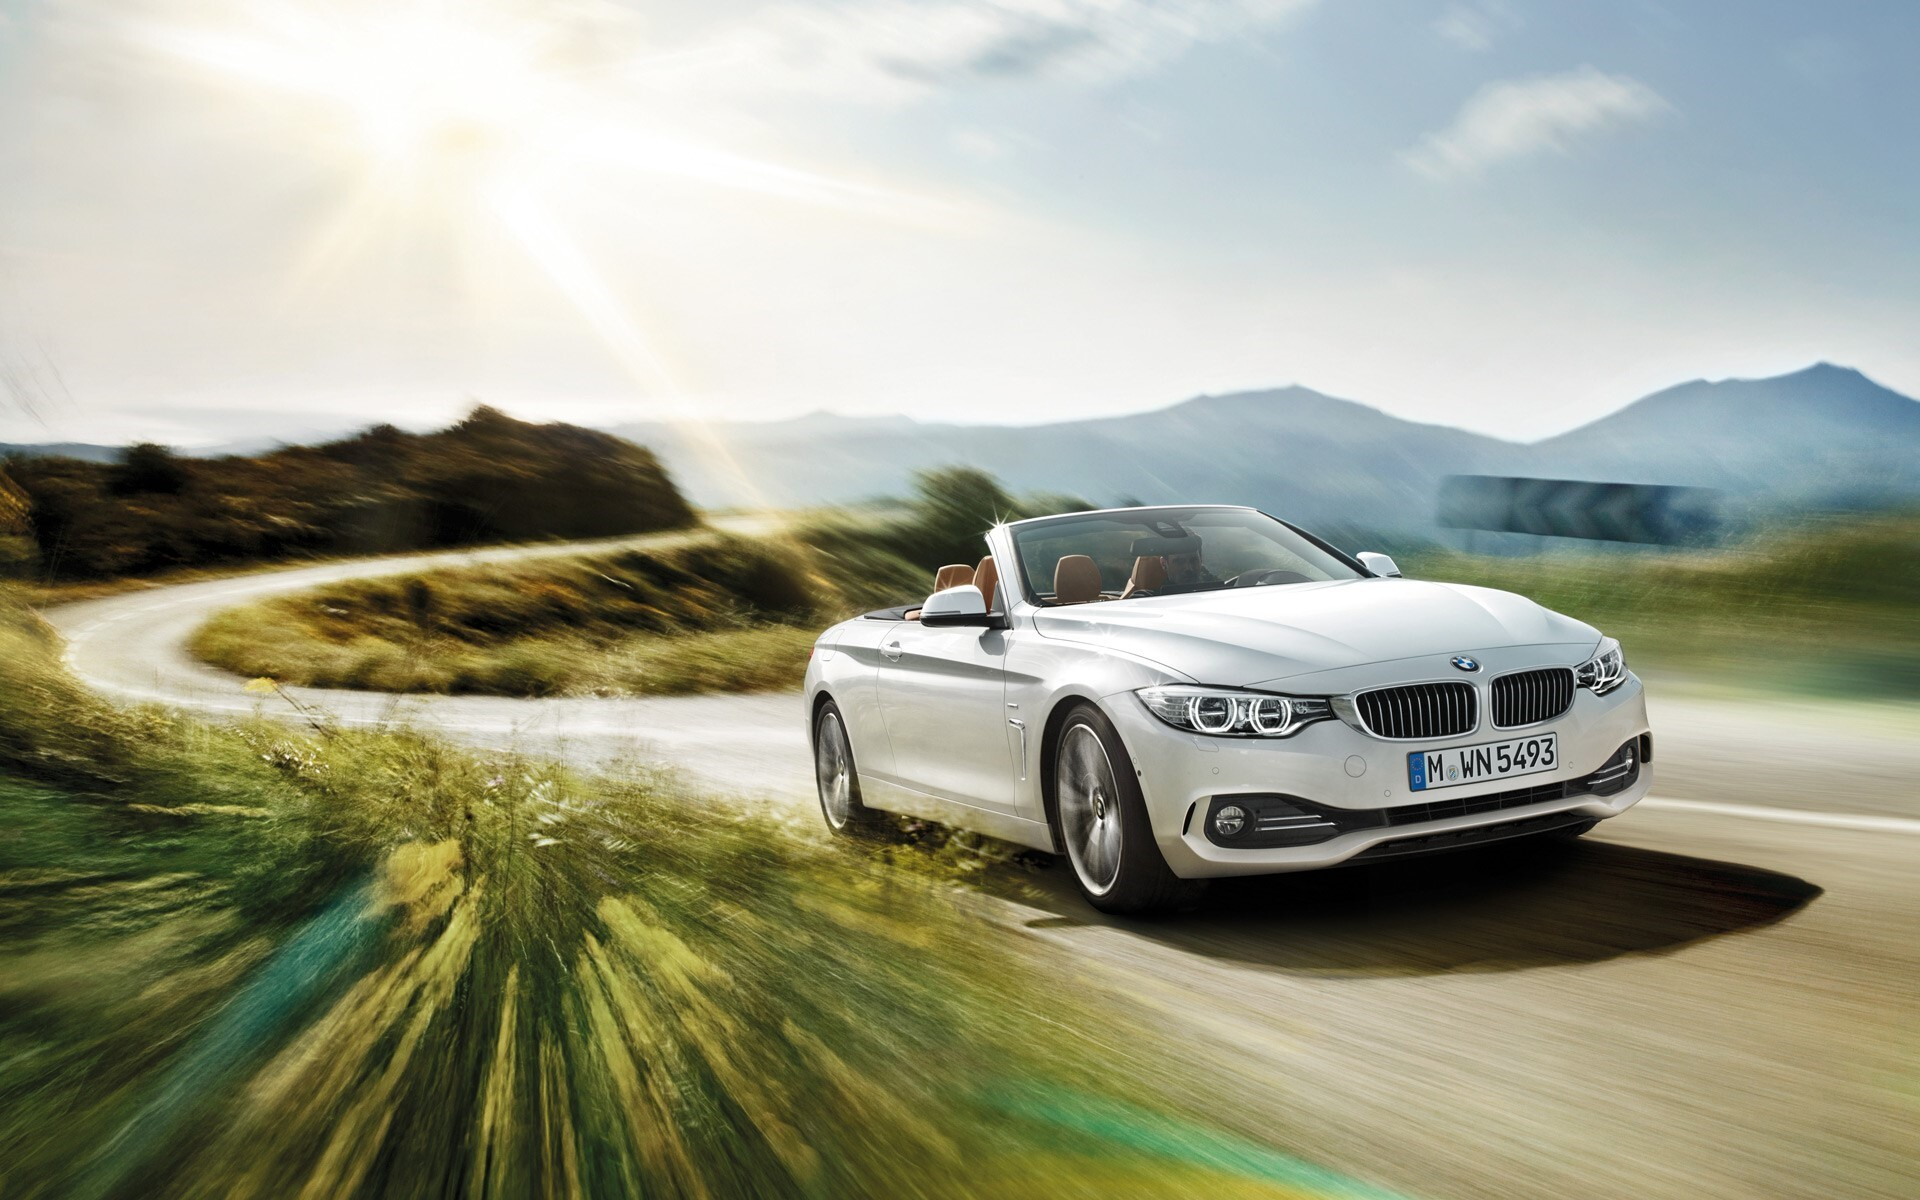 on 17 12 2013 category bmw downloads 346 tags bmw cars views 1209